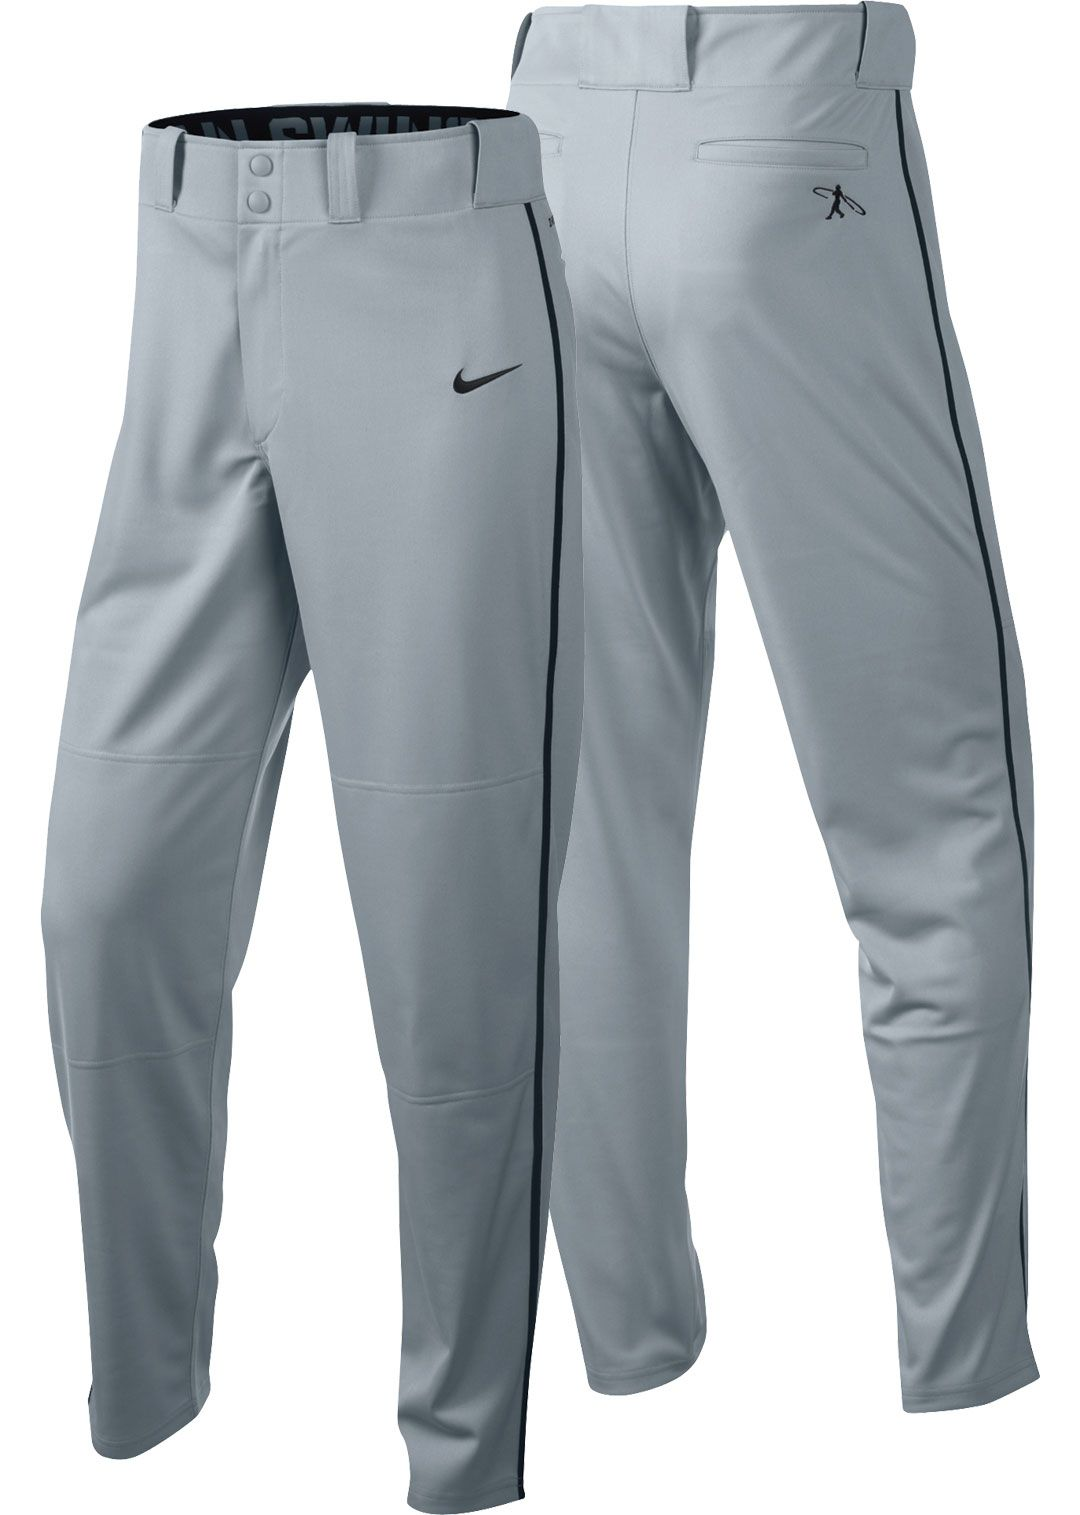 3b6aaf460 Nike Boys' Swingman Dri-FIT Piped Baseball Pants | DICK'S Sporting Goods